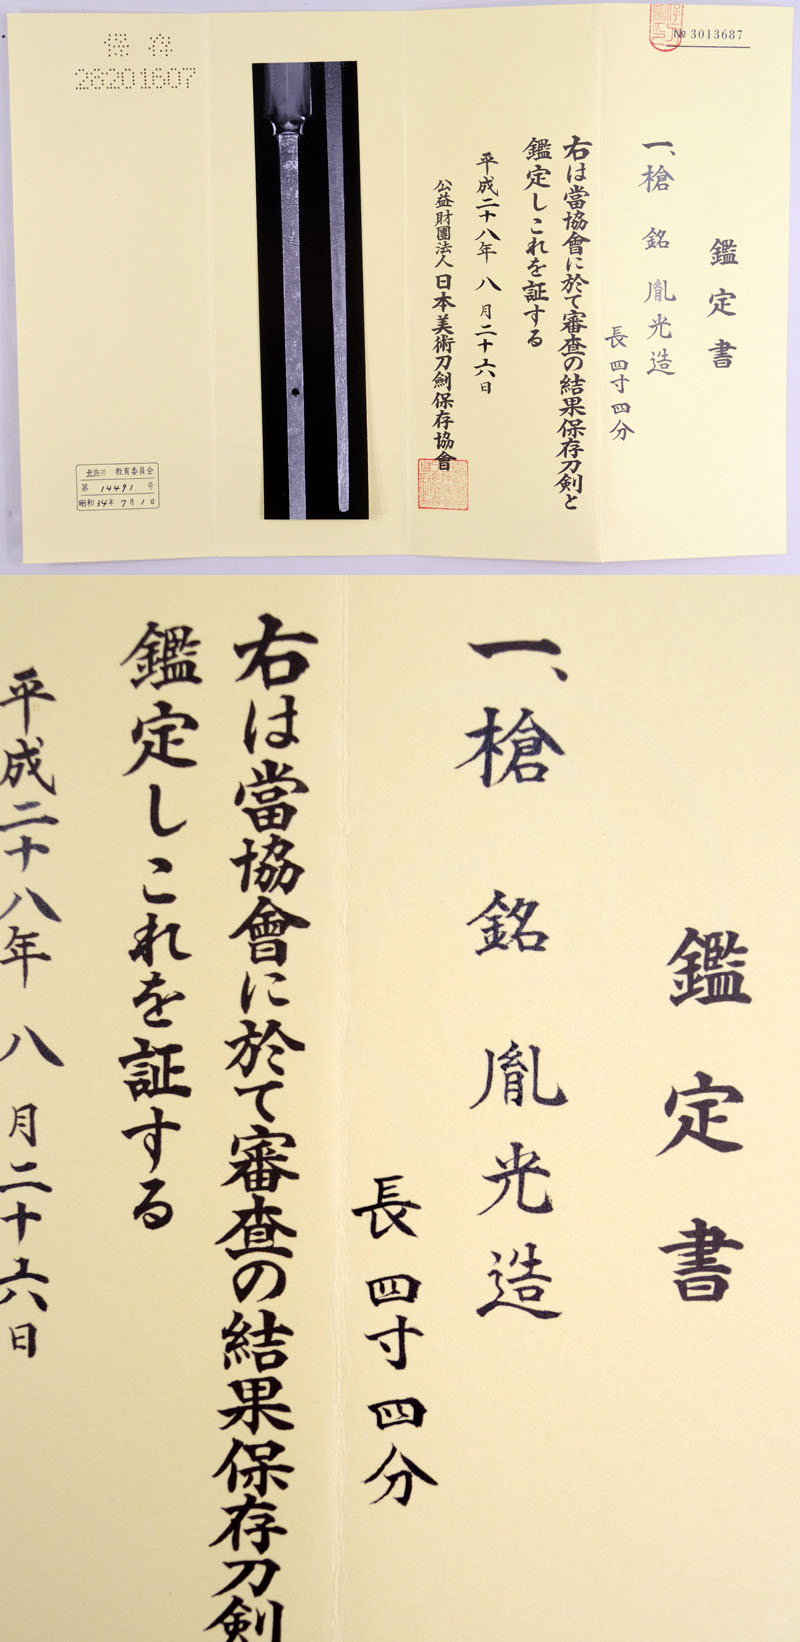 胤光造(心慶胤光) Picture of Certificate